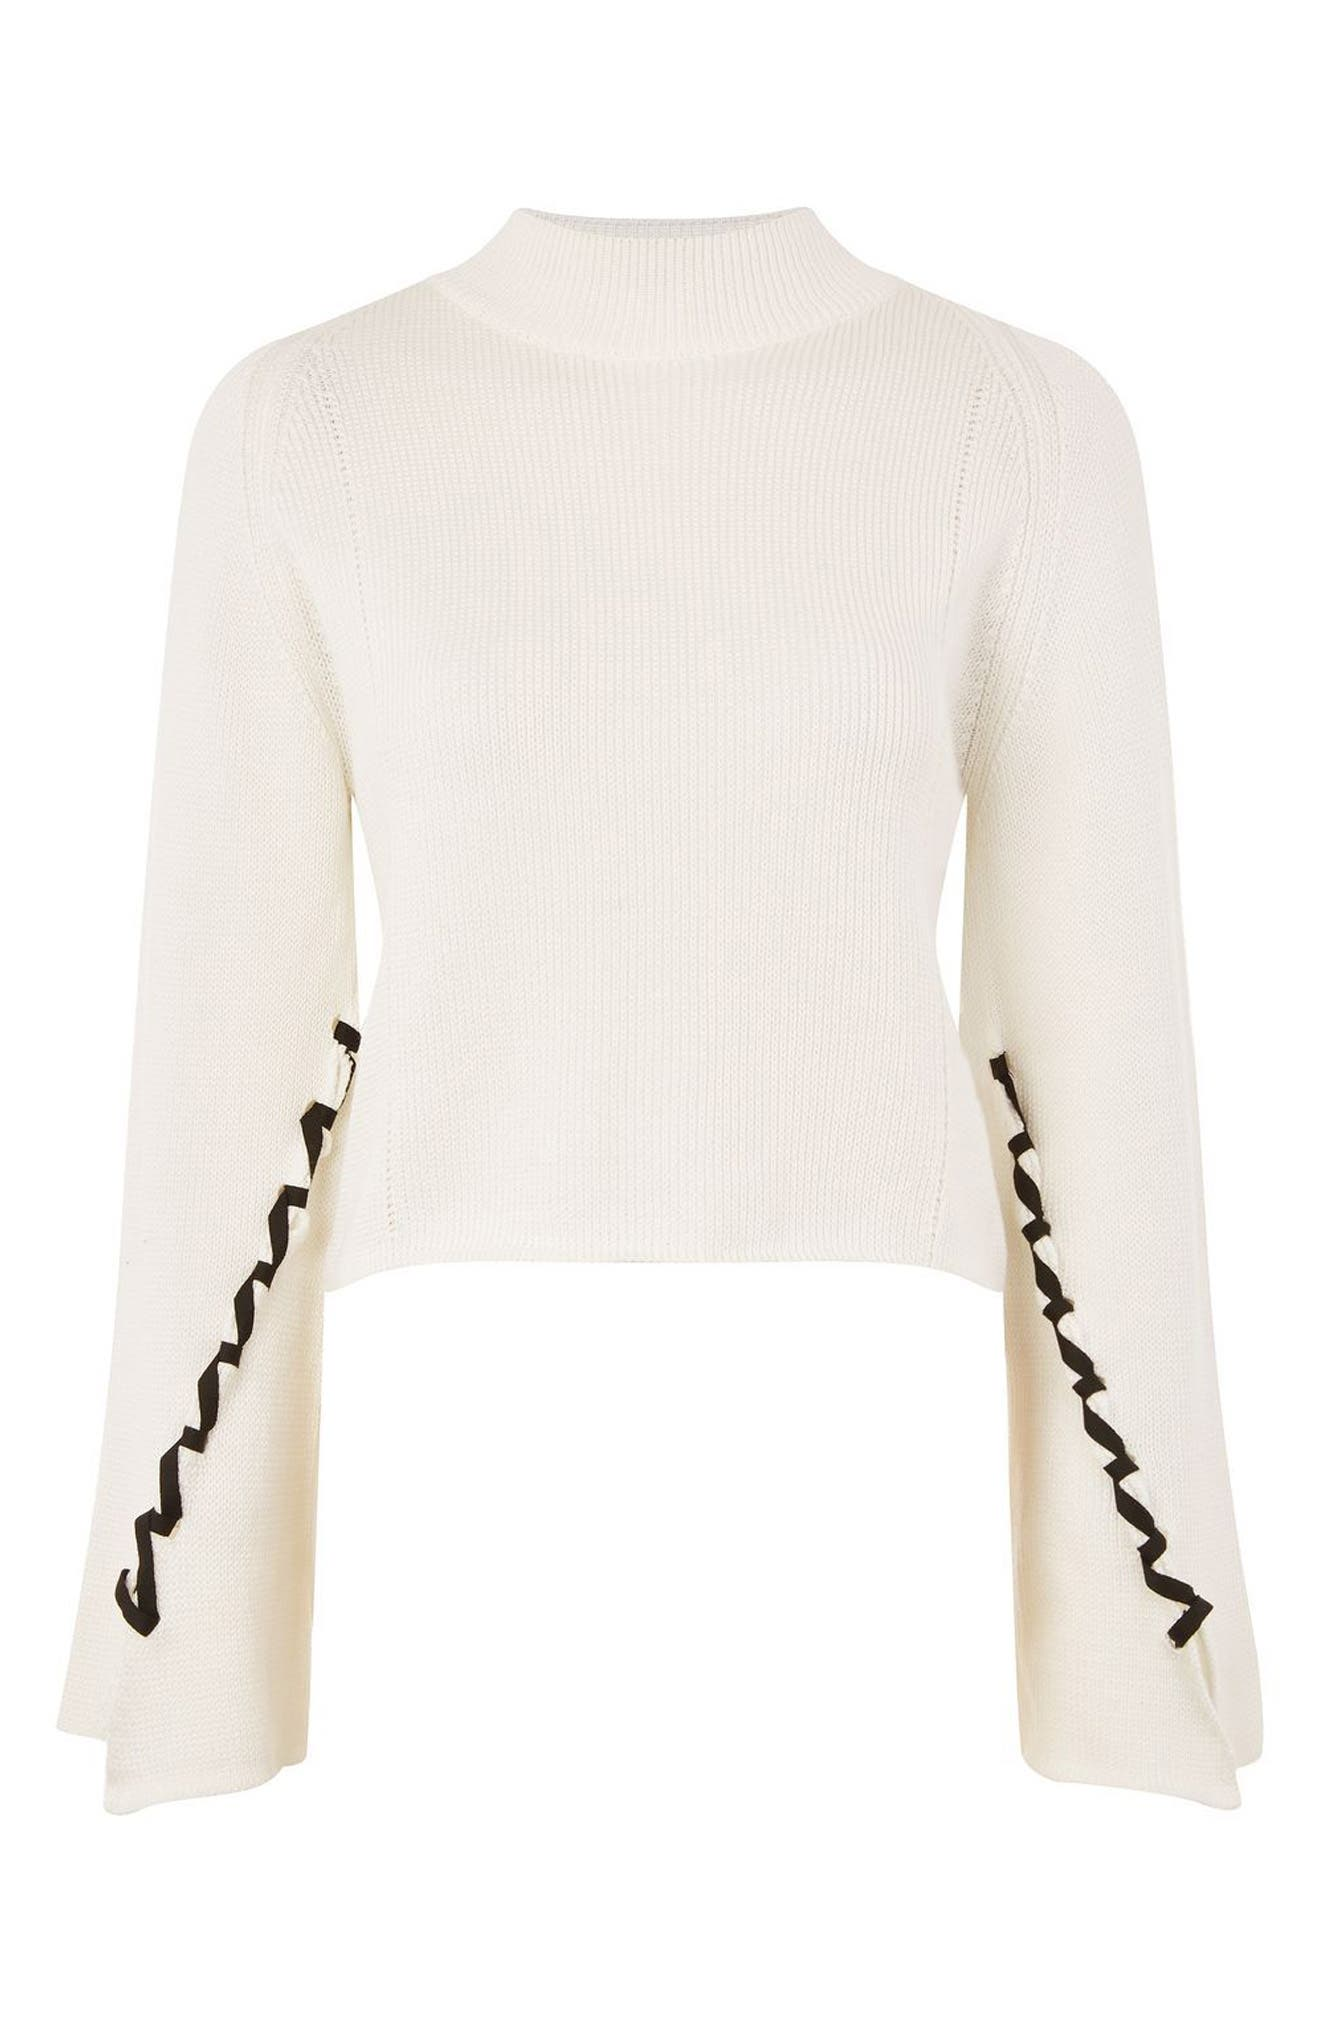 Lace-Up Sleeve Sweater,                             Alternate thumbnail 4, color,                             Cream